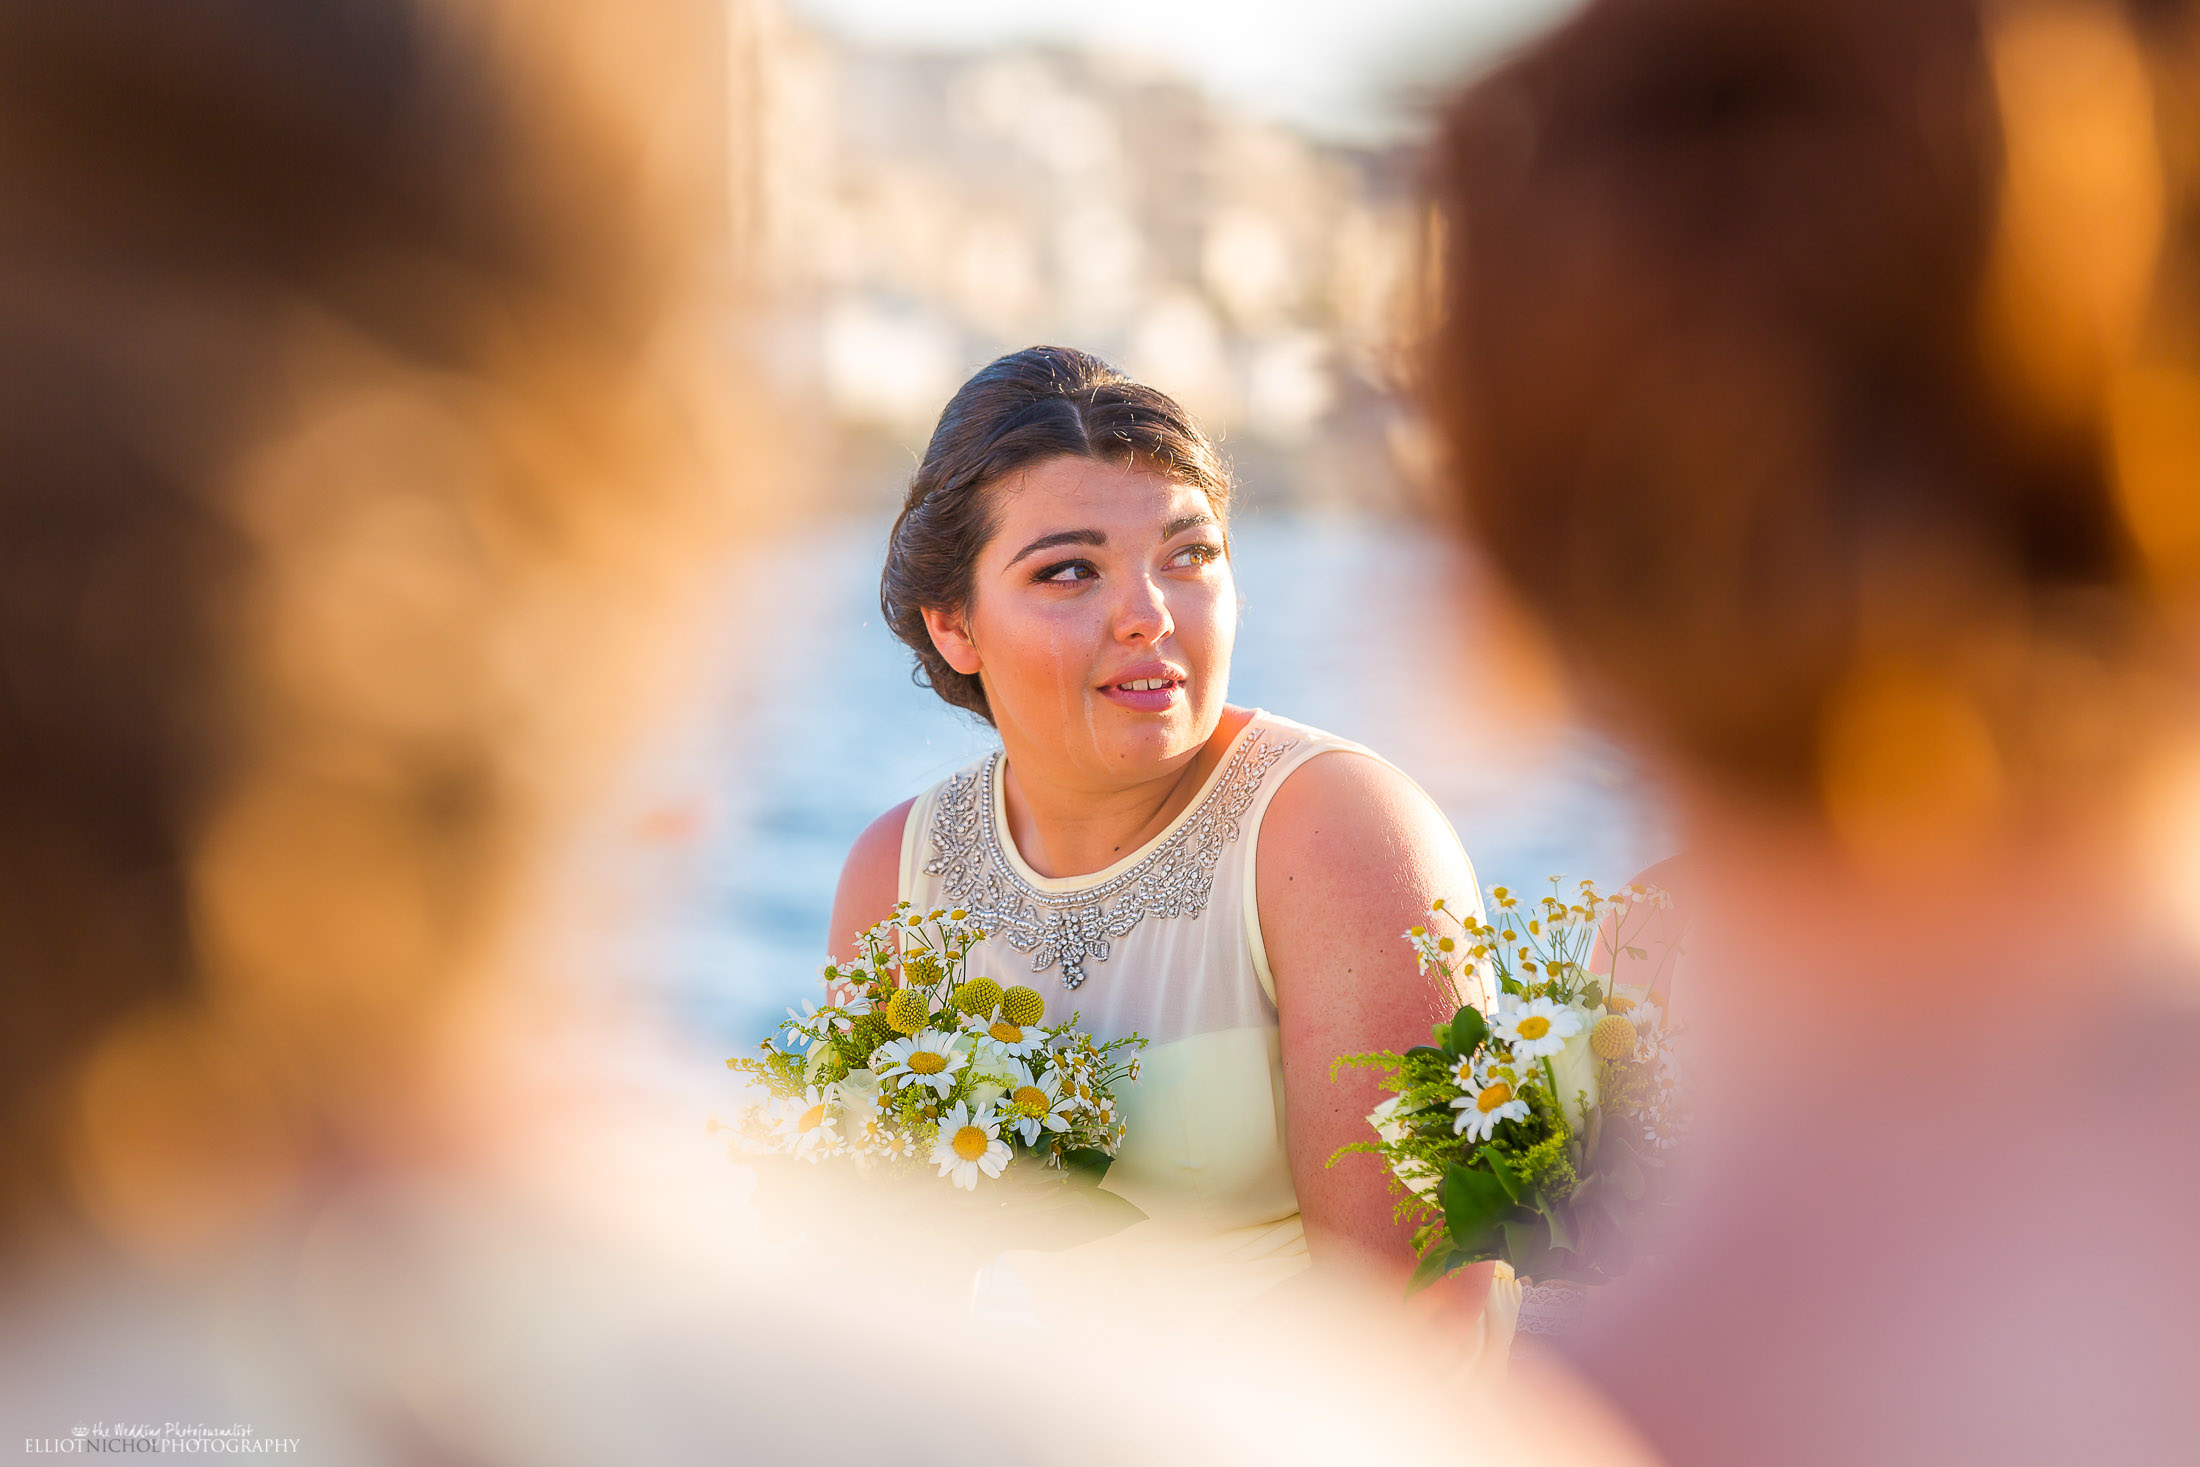 Emotional bridesmaid during the civil wedding ceremony. Photo by Elliot Nichol Photography.